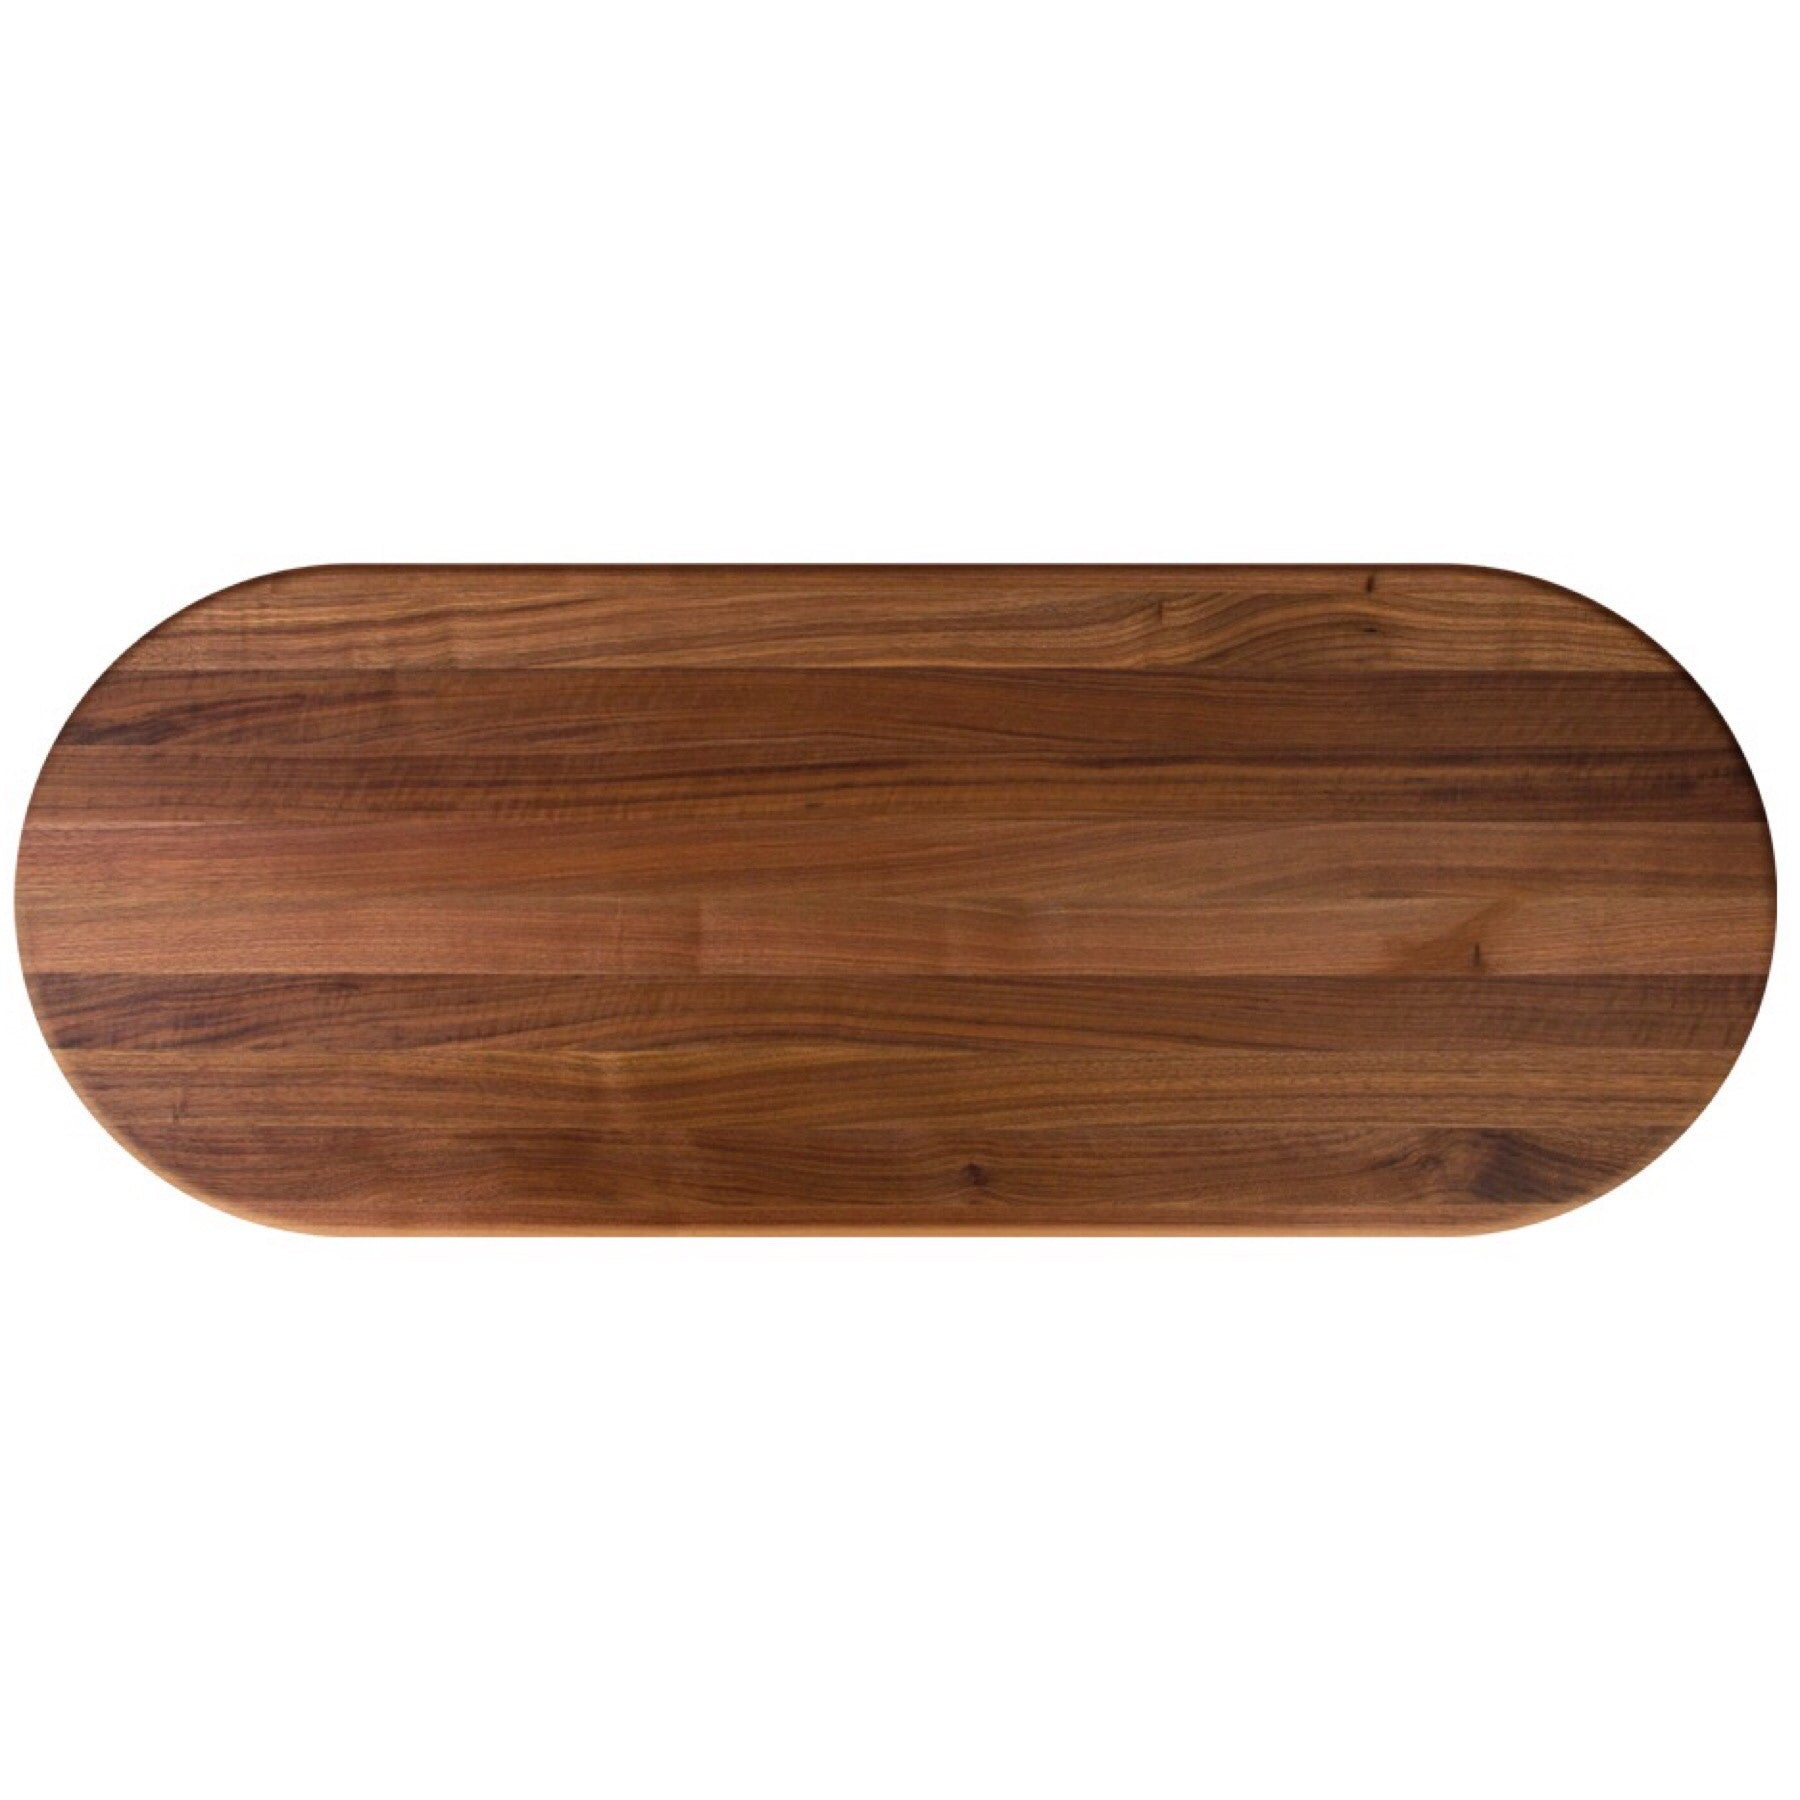 John Boos Oval RTW Walnut Butcher Block Table Top